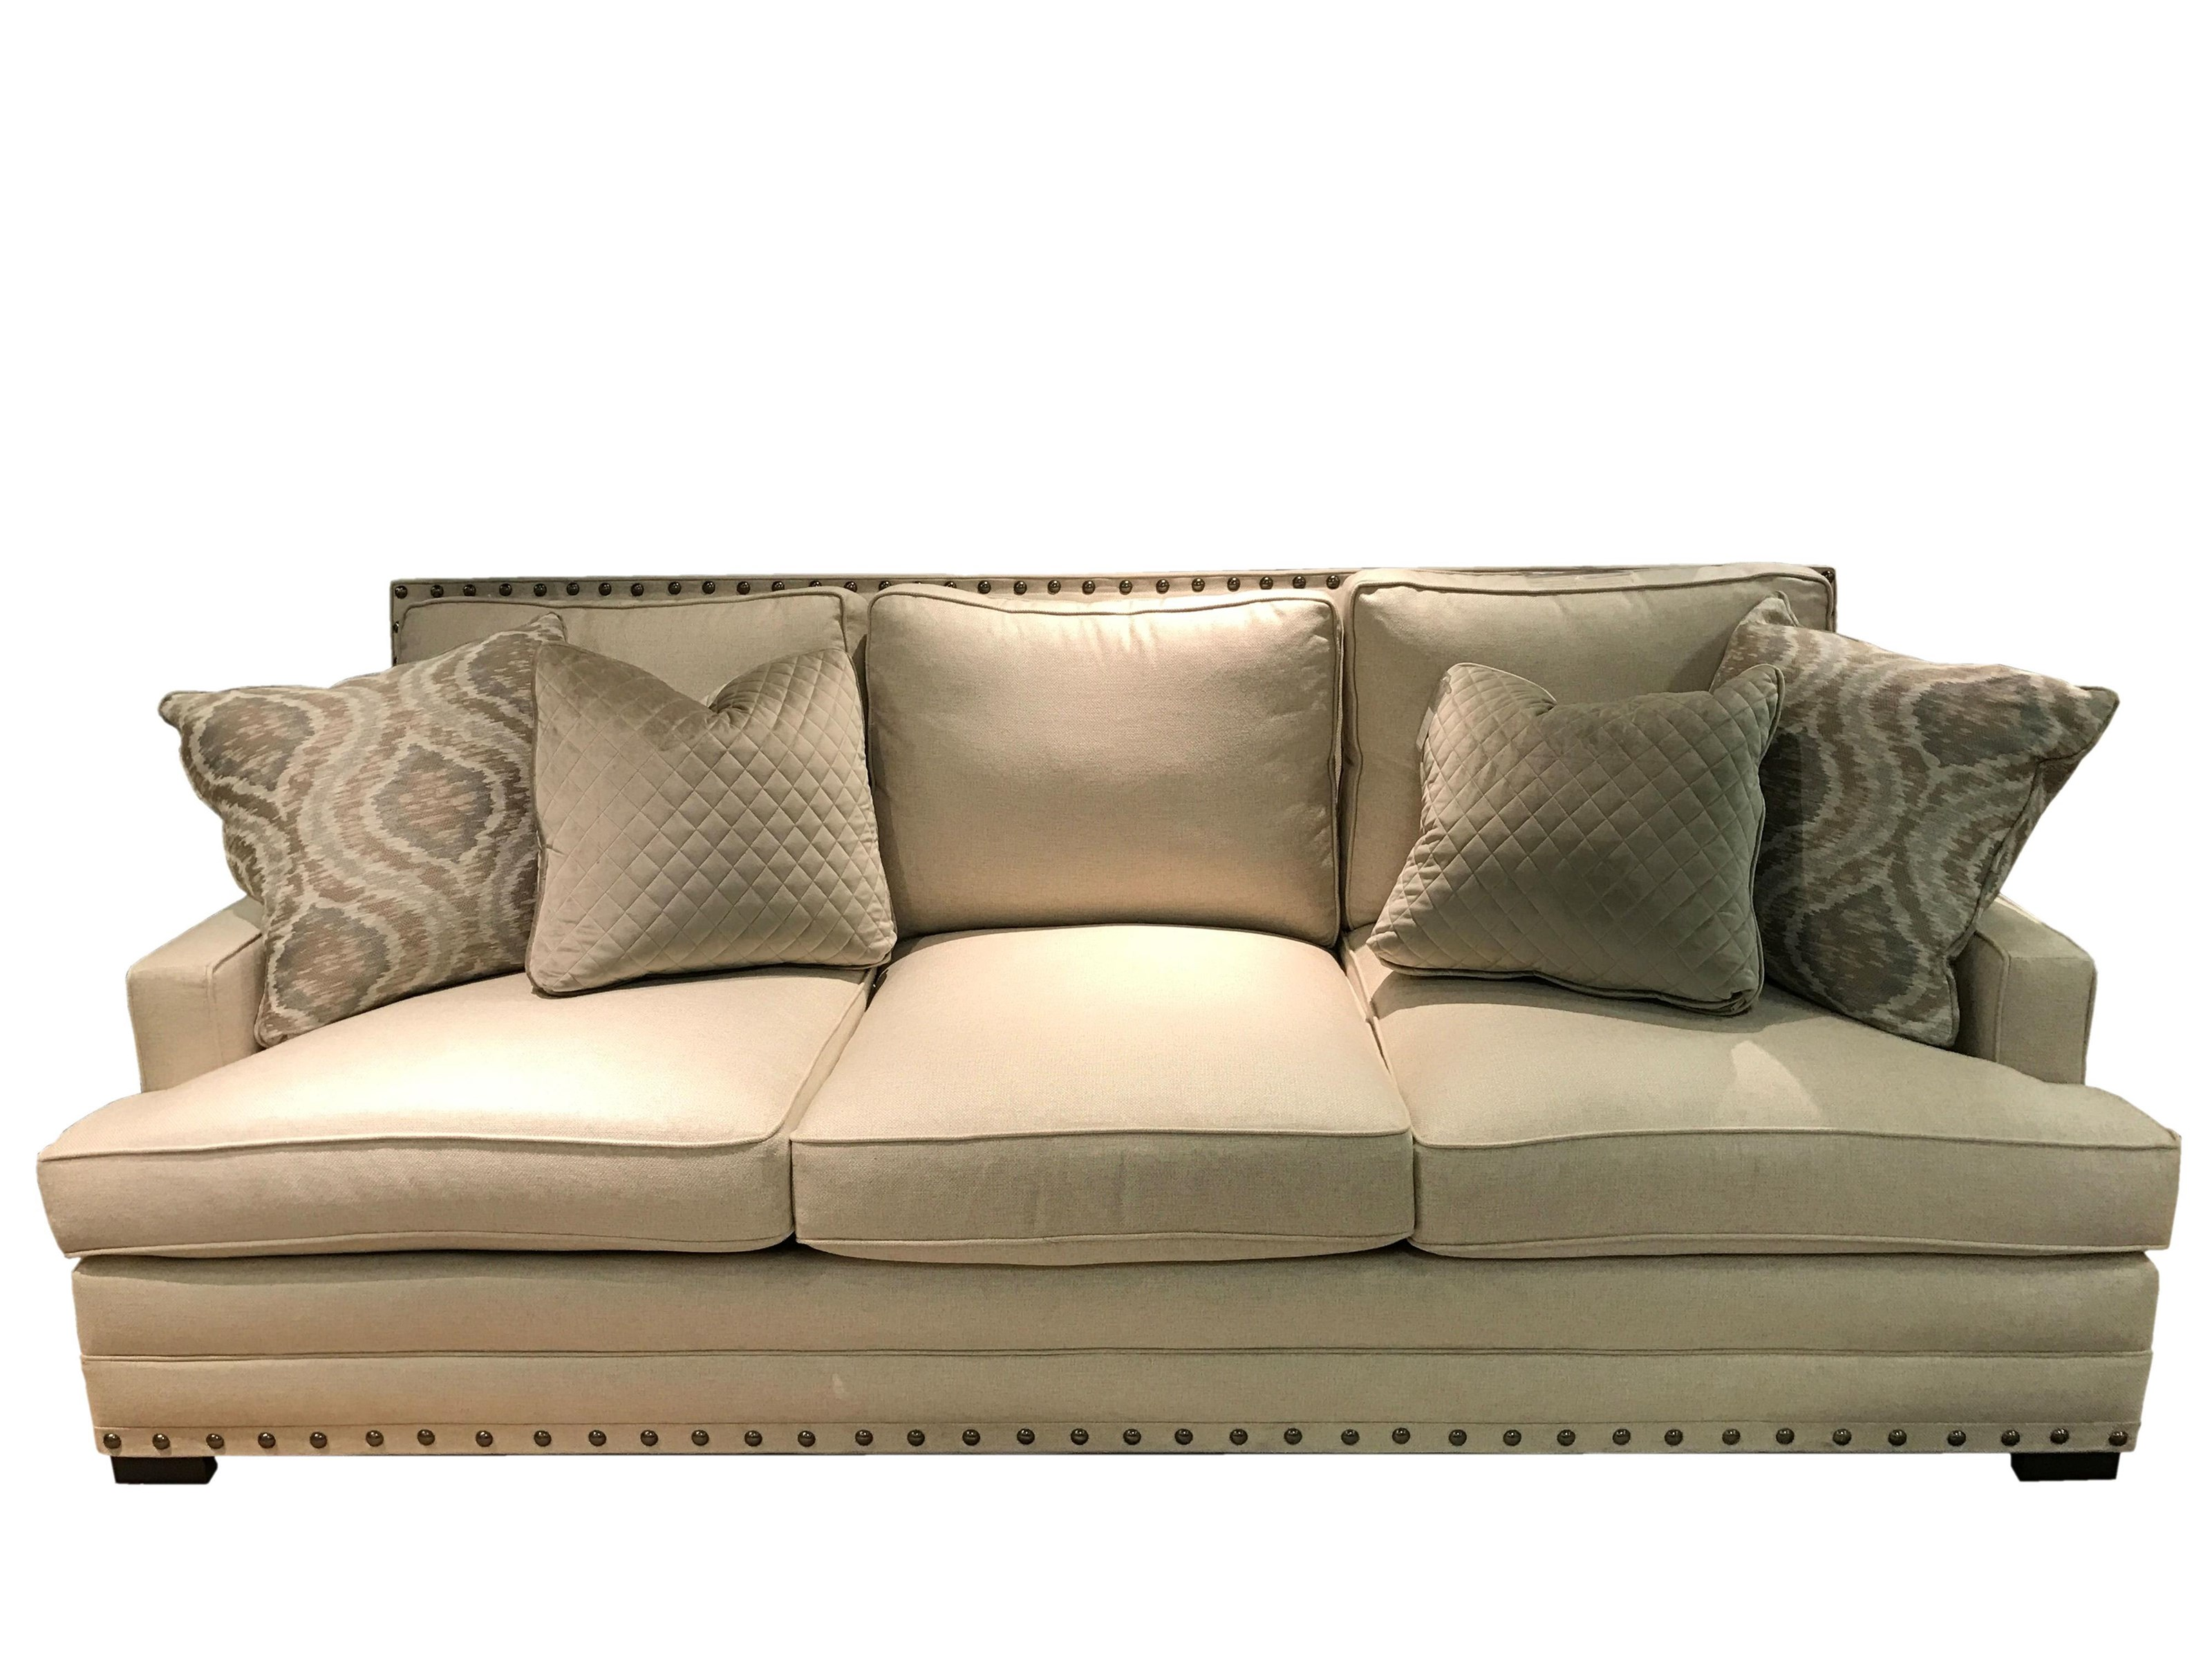 bernhardt cantor sectional sofa doctor philadelphia with nail head trim and low set arms